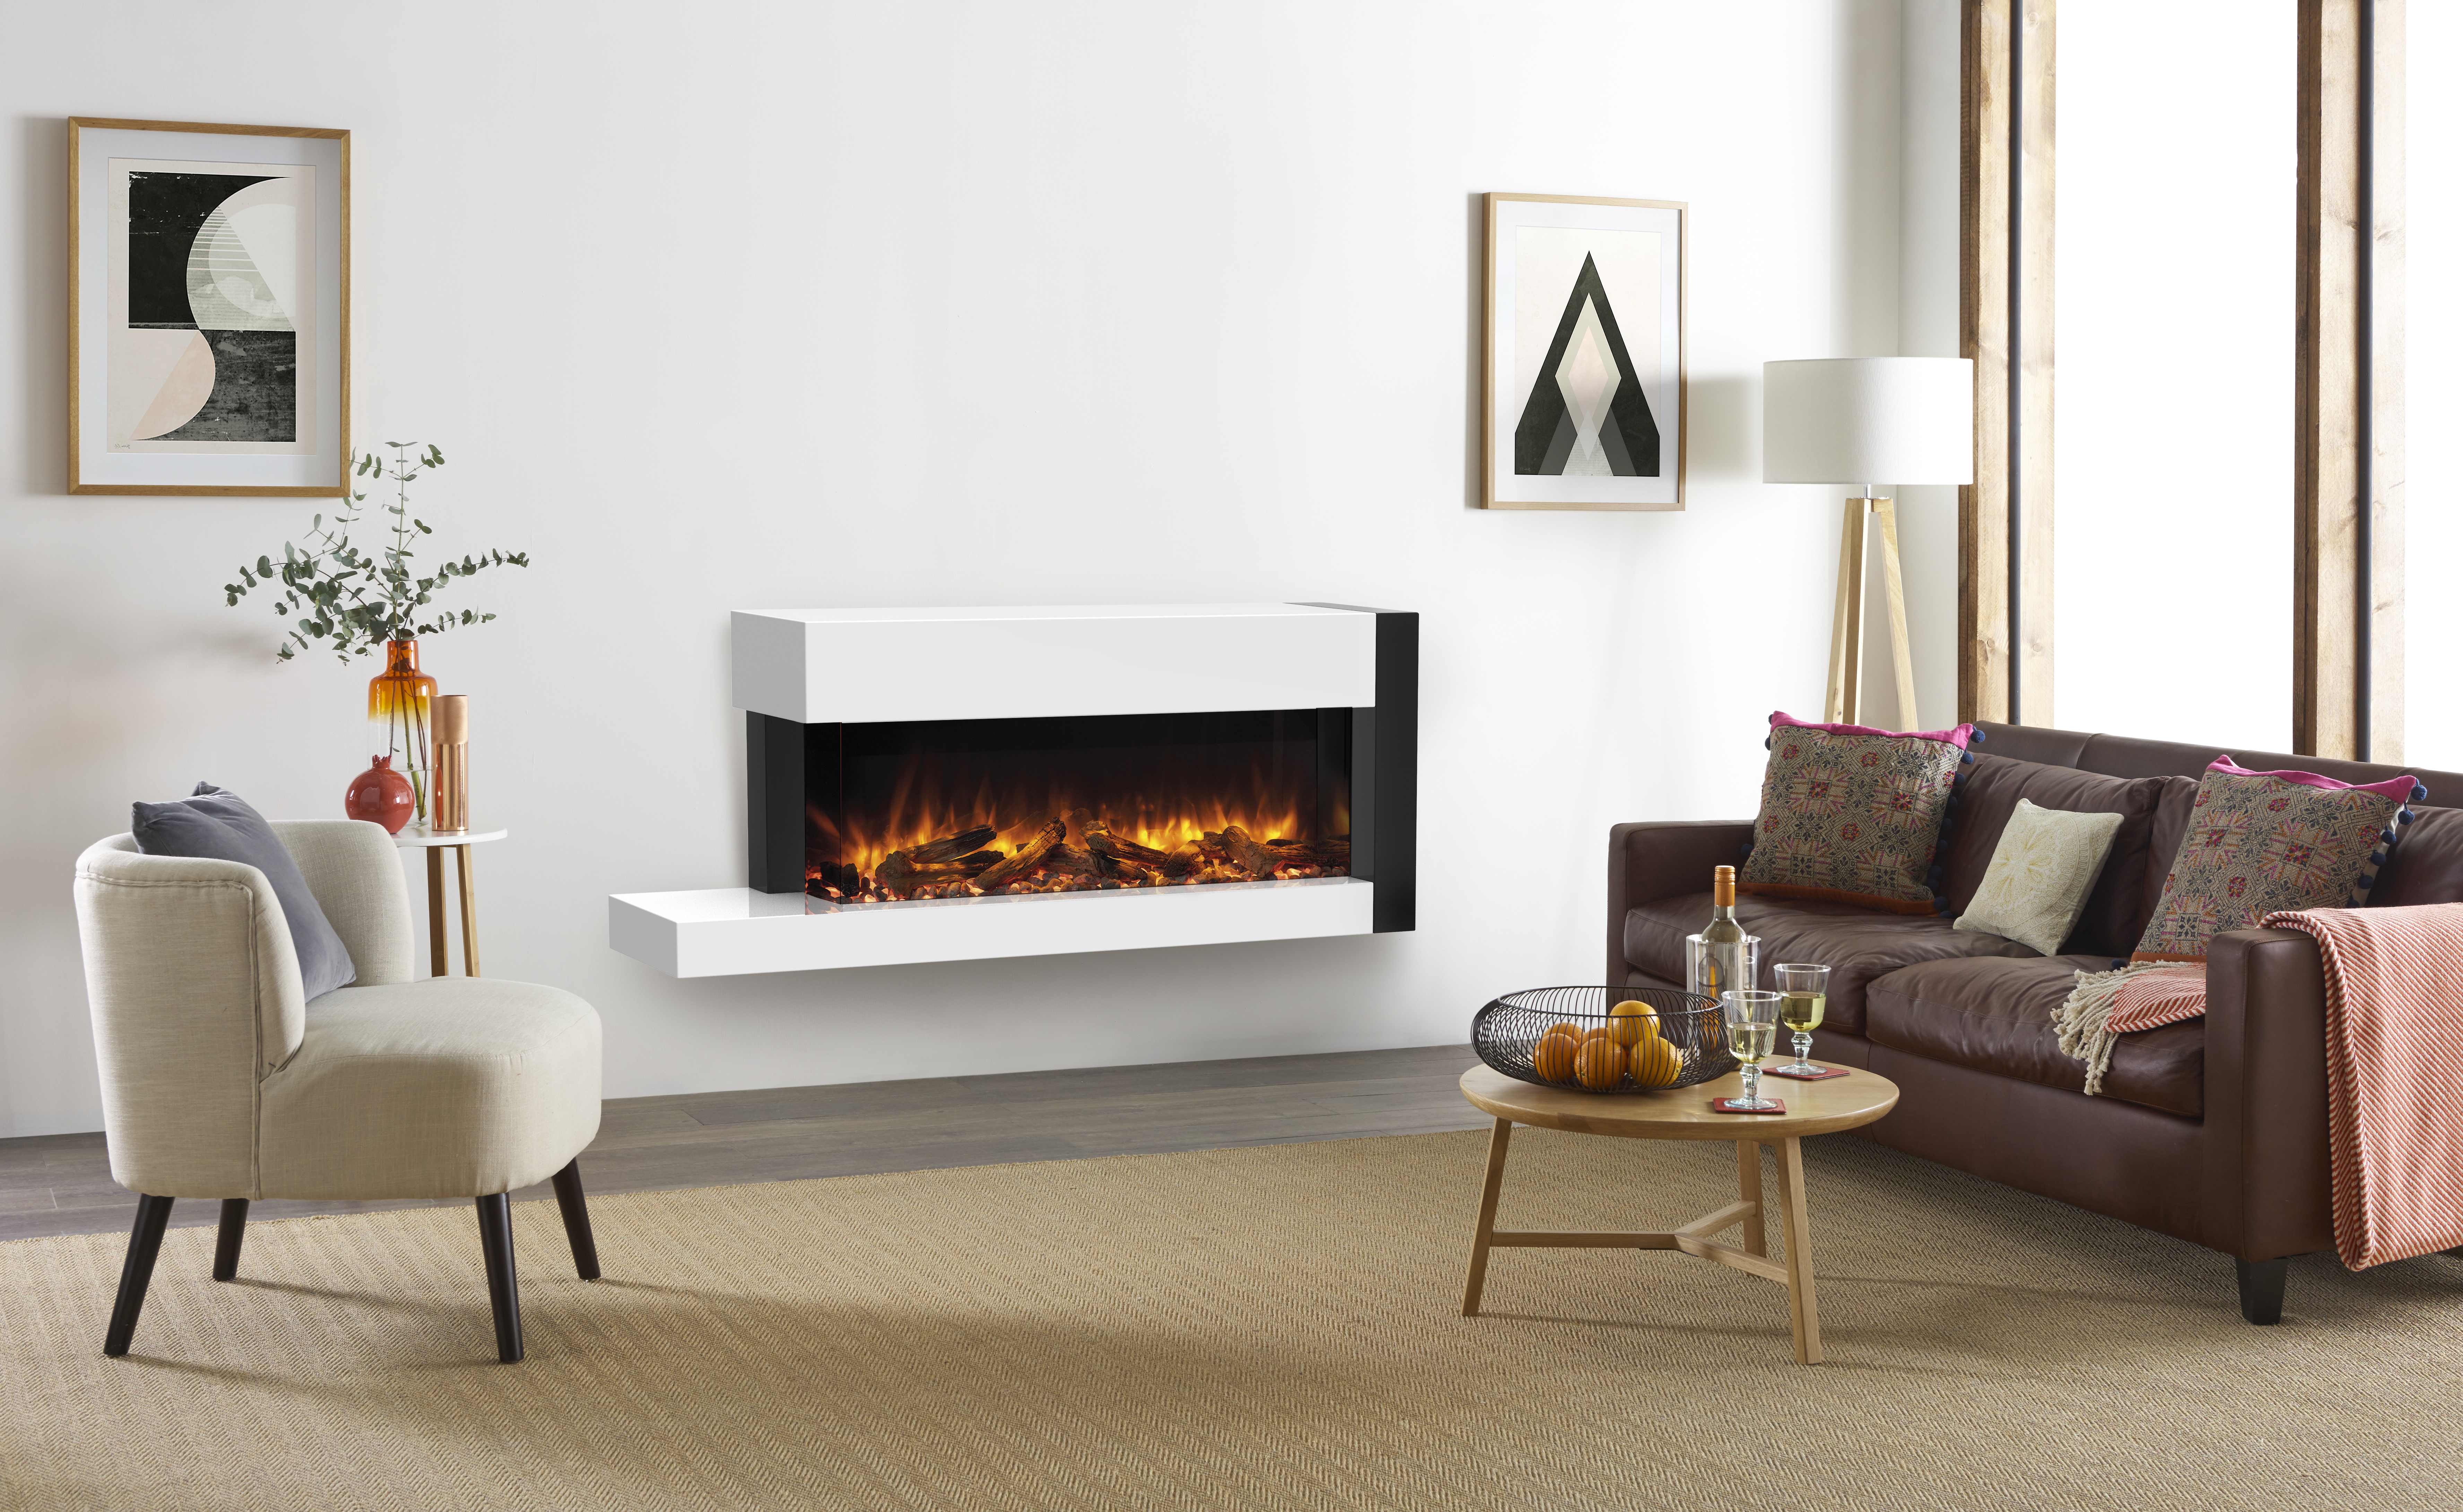 ideas fireplace cool stone logs decorative decoration pin living minimalist and stylish with surround modern room slate twill sofa white black gas frames tile